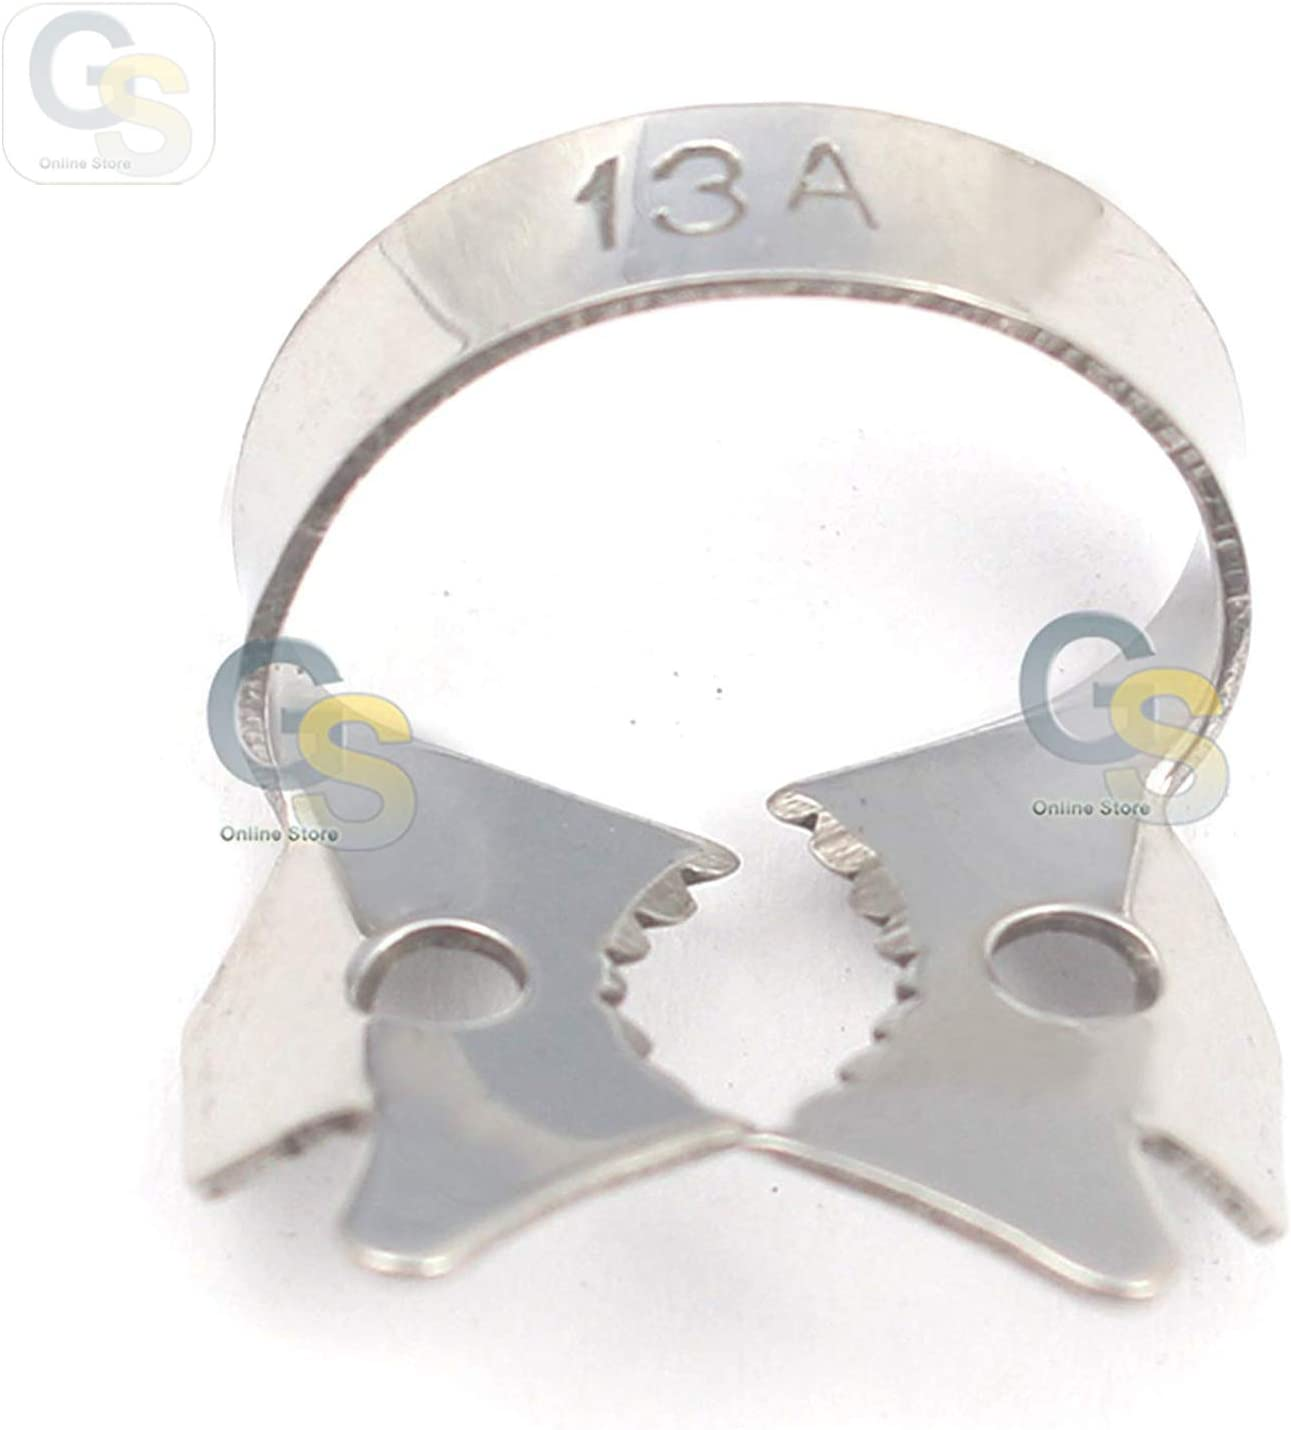 G.S Super beauty product restock quality top! Max 64% OFF Dental Instrument Endodontic Clamp Quality 13A Adult Best